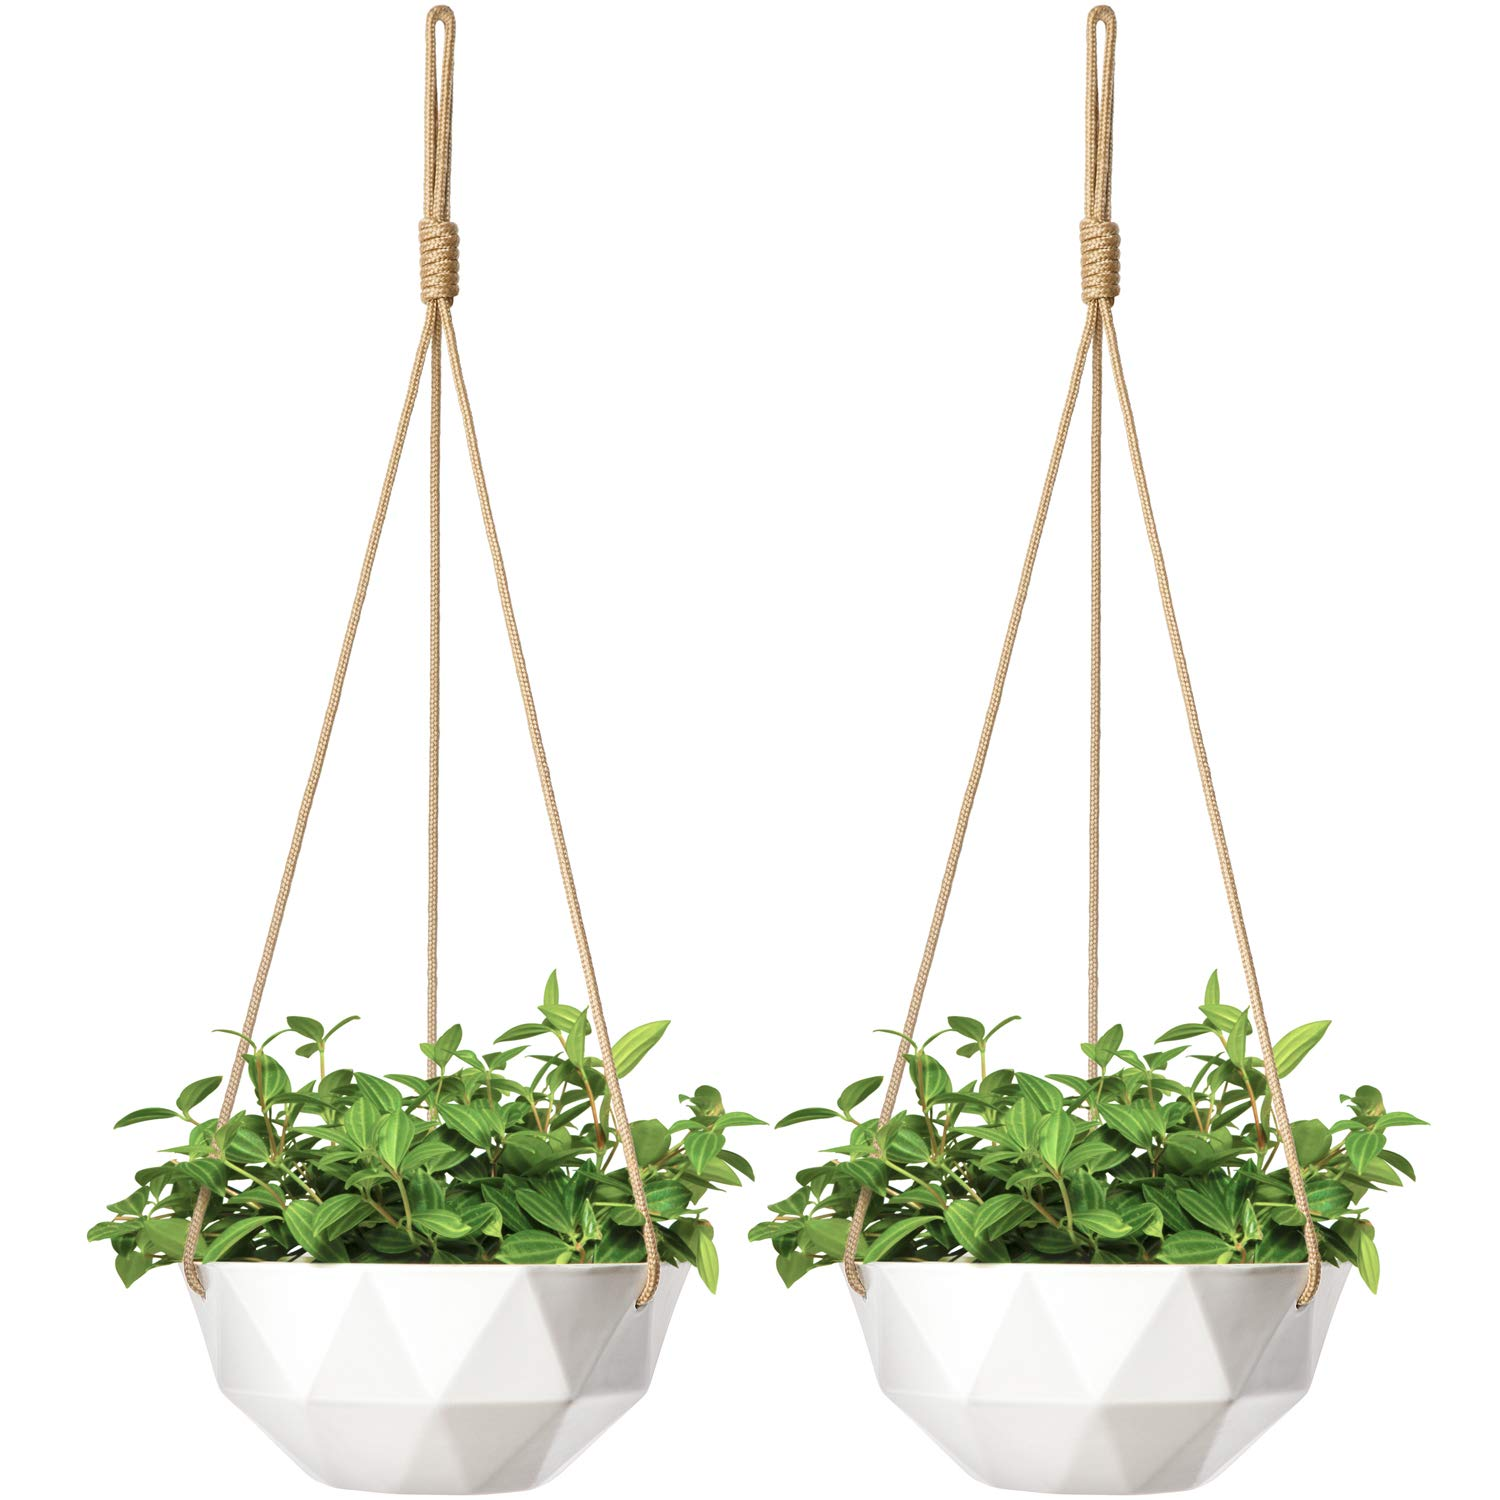 Mkono 2 Pack Ceramic Hanging Planter Modern Geometric Flower Plant Pot 9 Inch Porcelain Hanging Basket with Rope Hanger for Indoor Outdoor Herbs Ivy Crawling Plants, White by Mkono